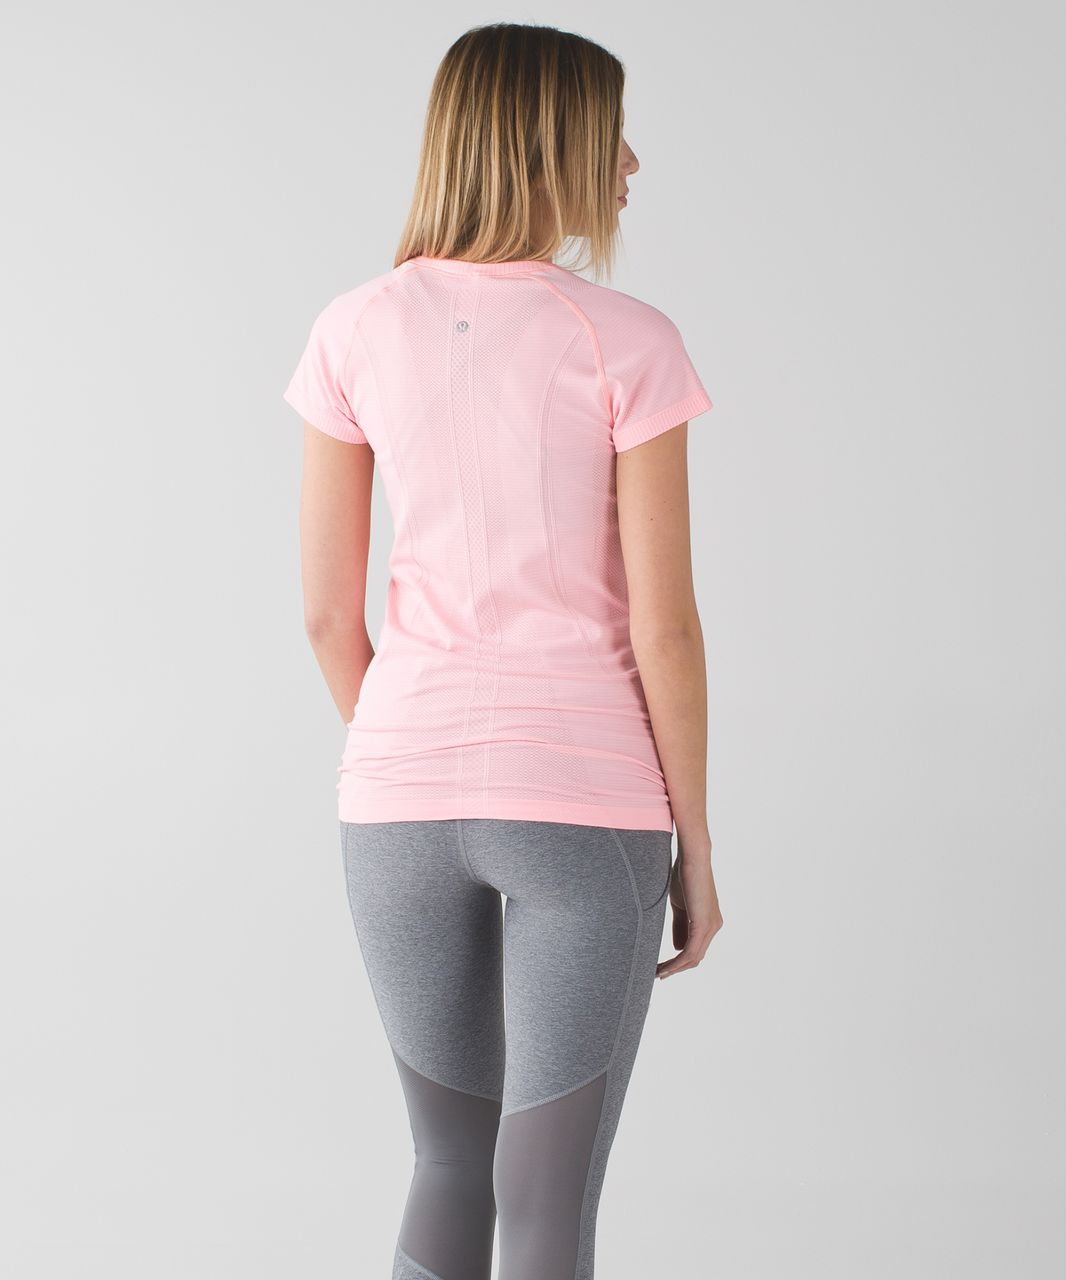 Lululemon Swiftly Tech Short Sleeve Crew - Heathered Bleached Coral